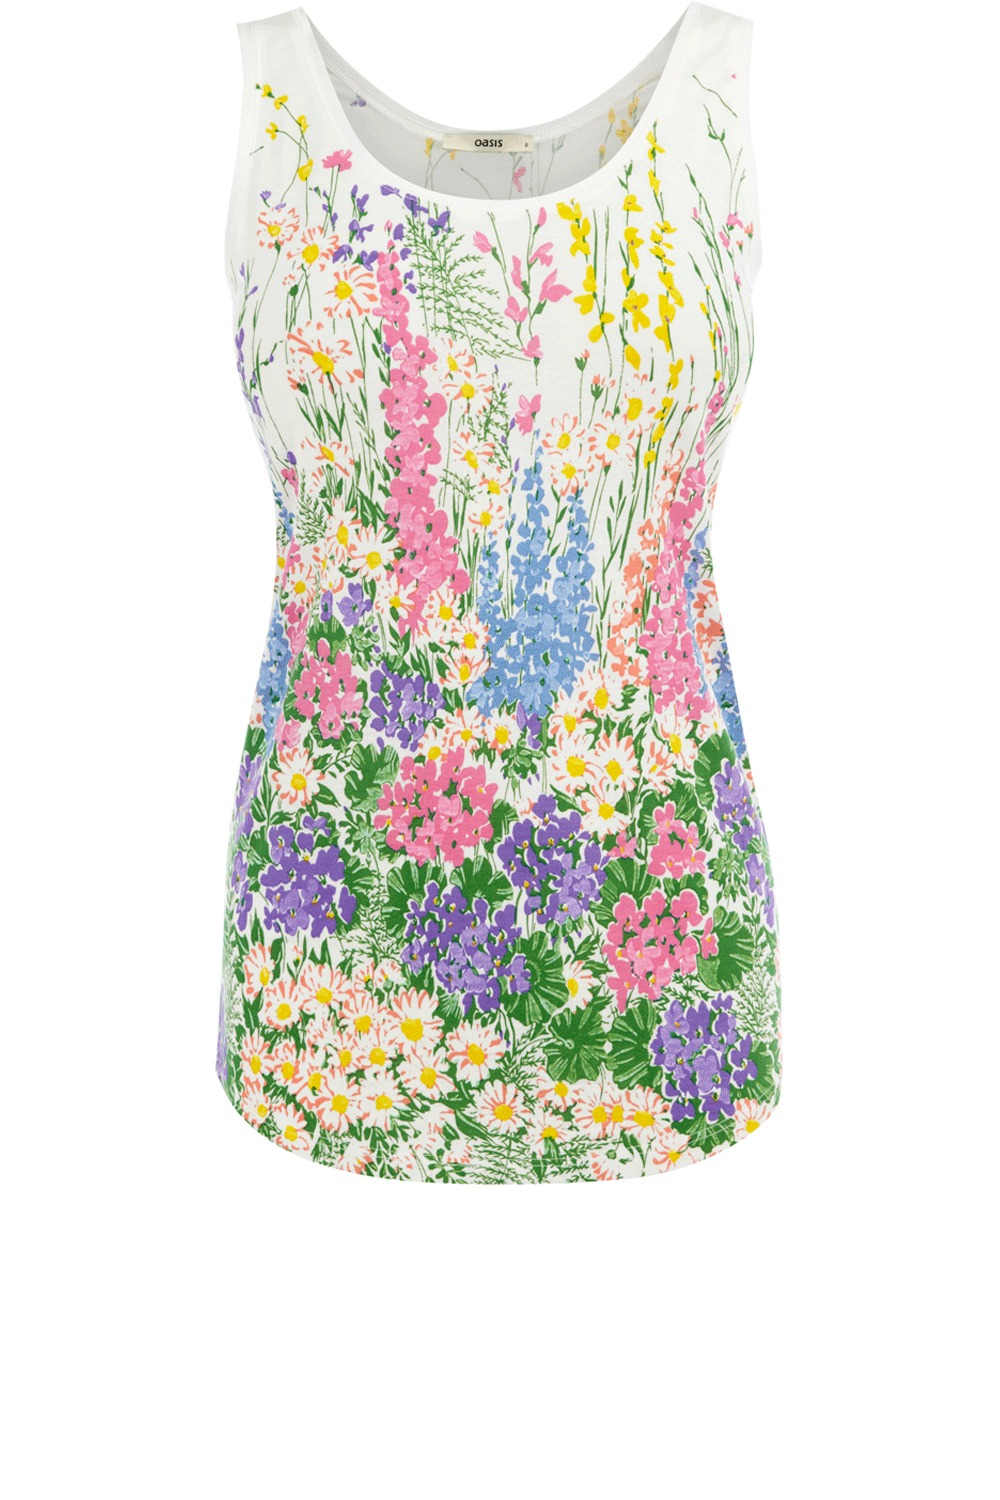 Floral Scoop Vest - sleeve style: standard vest straps/shoulder straps; pattern: floral - busy, florals; waist detail: fitted waist; style: vest top; hip detail: fitted at hip; occasions: casual, evening; length: standard; neckline: scoop; fibres: polyester/polyamide - 100%; material texture: jersey; fit: body skimming; predominant colour: multicoloured; trends: prints; sleeve length: sleeveless; pattern type: fabric; pattern size: small & busy; texture group: jersey - stretchy/drapey